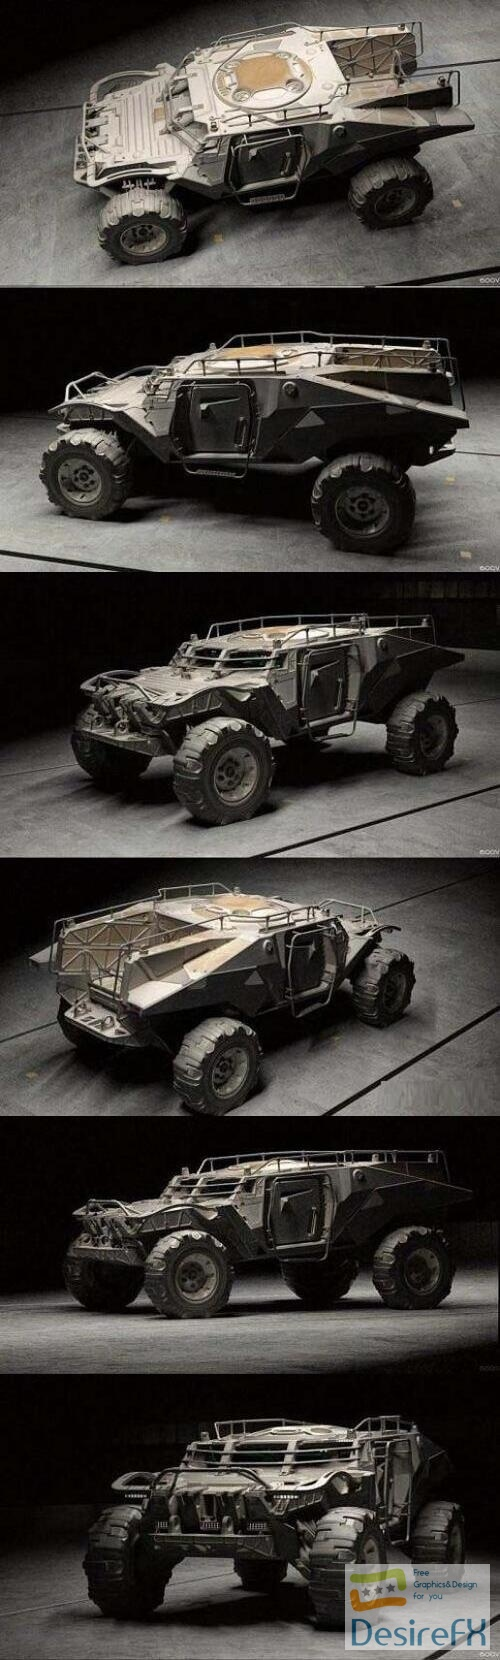 NOMAD 355 BRM Military Concept Vehicle 3D Model